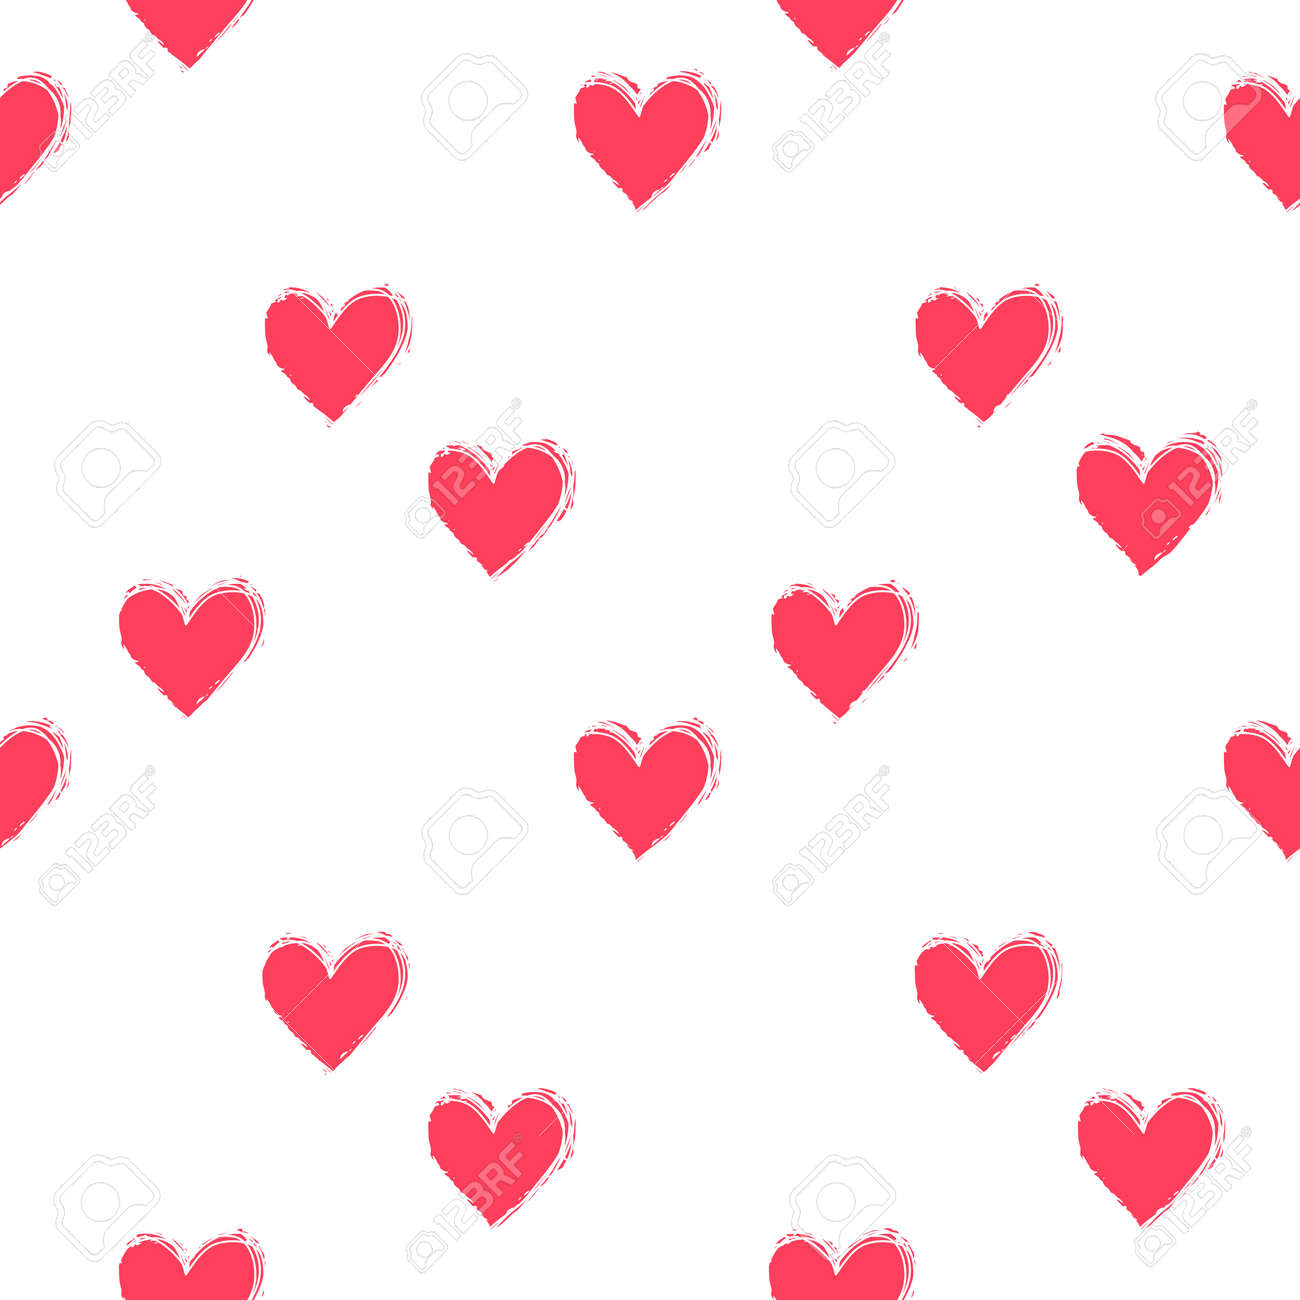 Seamless heart pattern hand painted with ink brush - 167158738